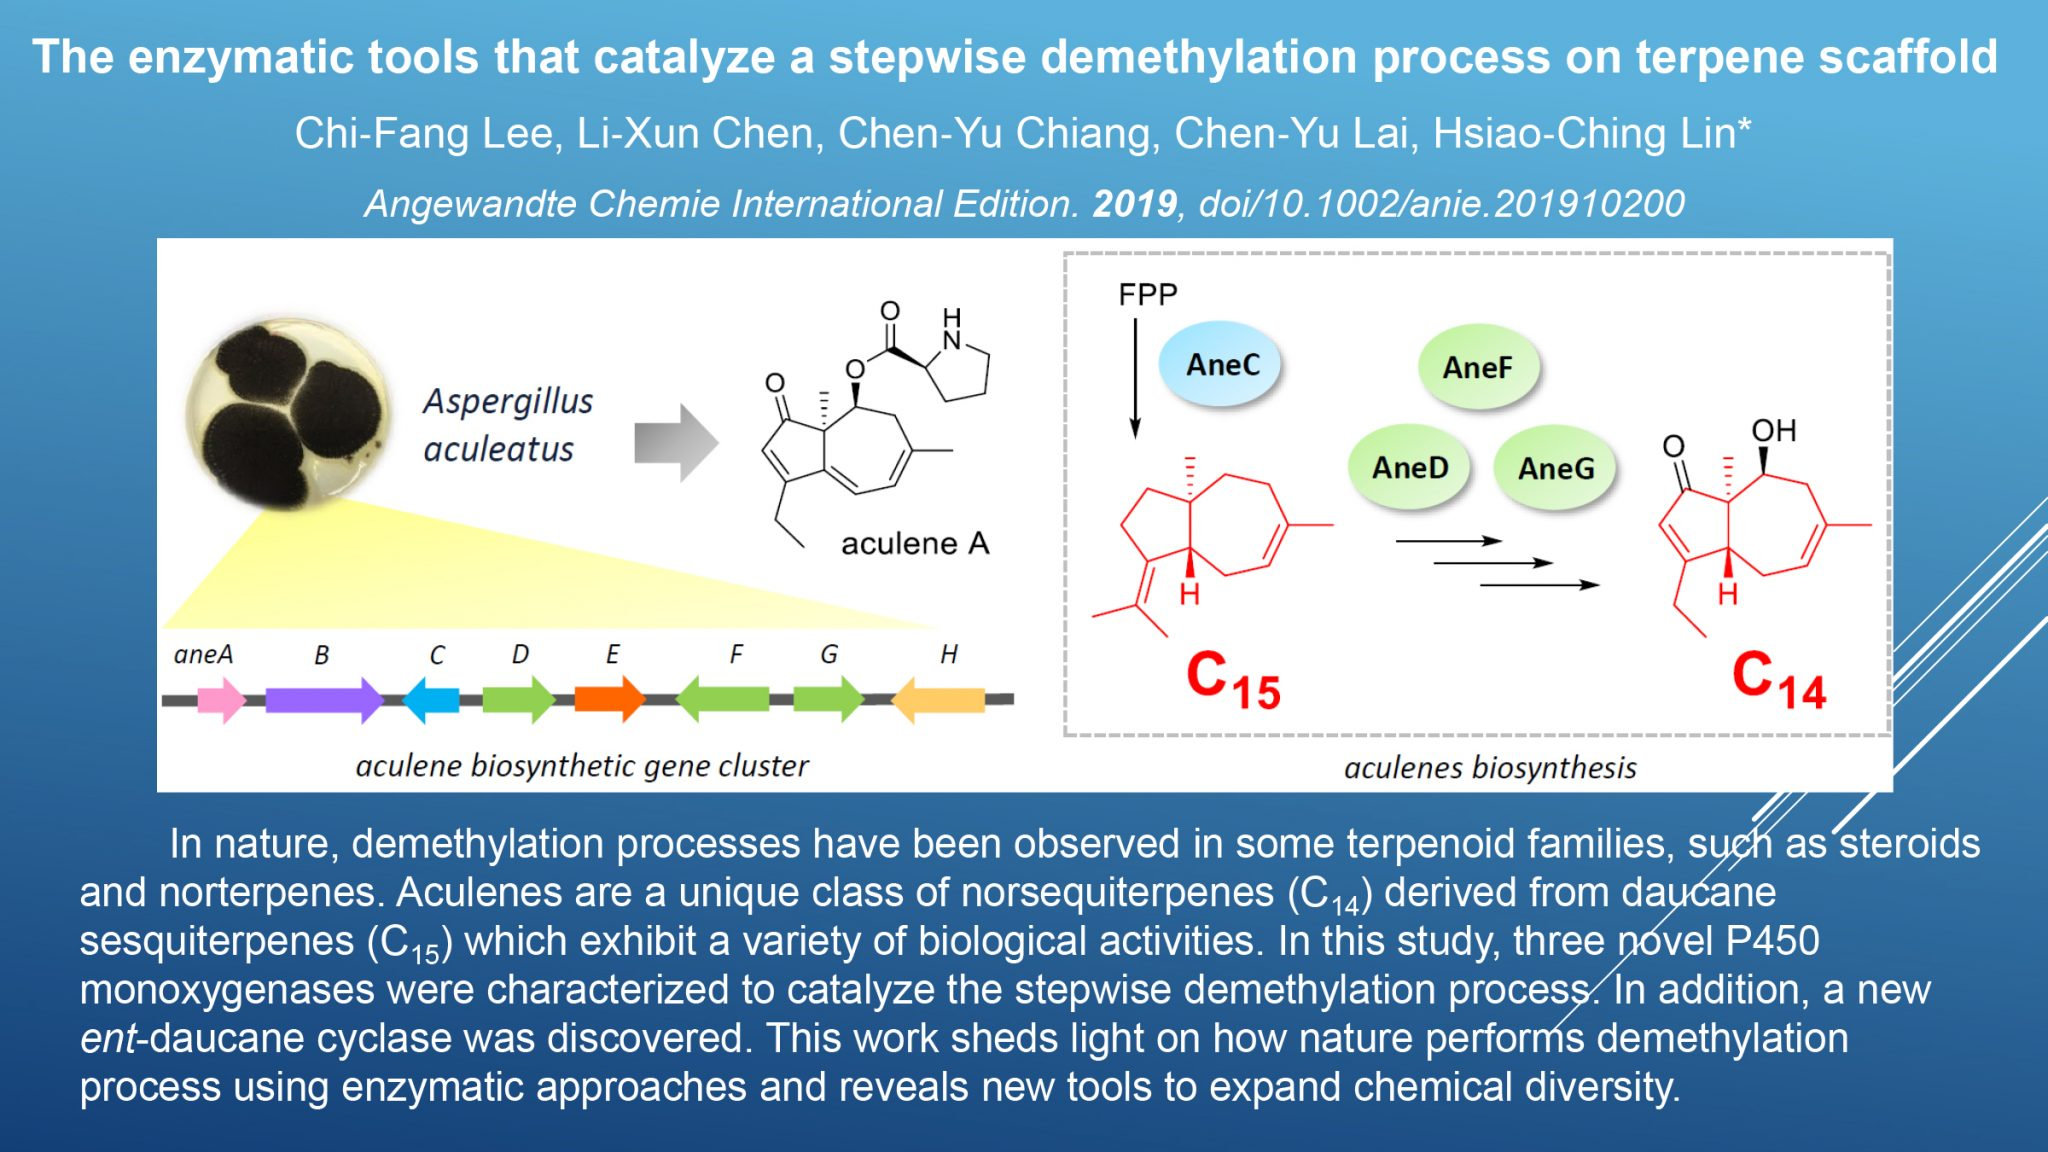 The Biosynthesis of Norsesquiterpene Aculenes Requires Three Cytochrome P450 Enzymes to Catalyze a Stepwise Demethylation Process